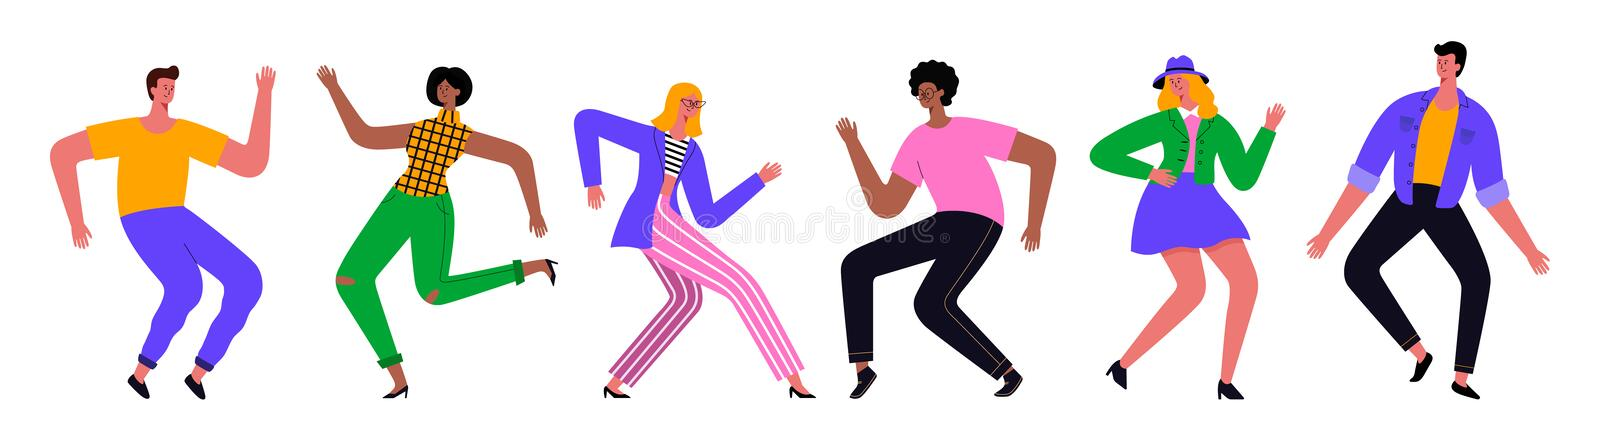 Group of young happy dancing people or male and female dancers. Vector illustration flat design. vector illustration